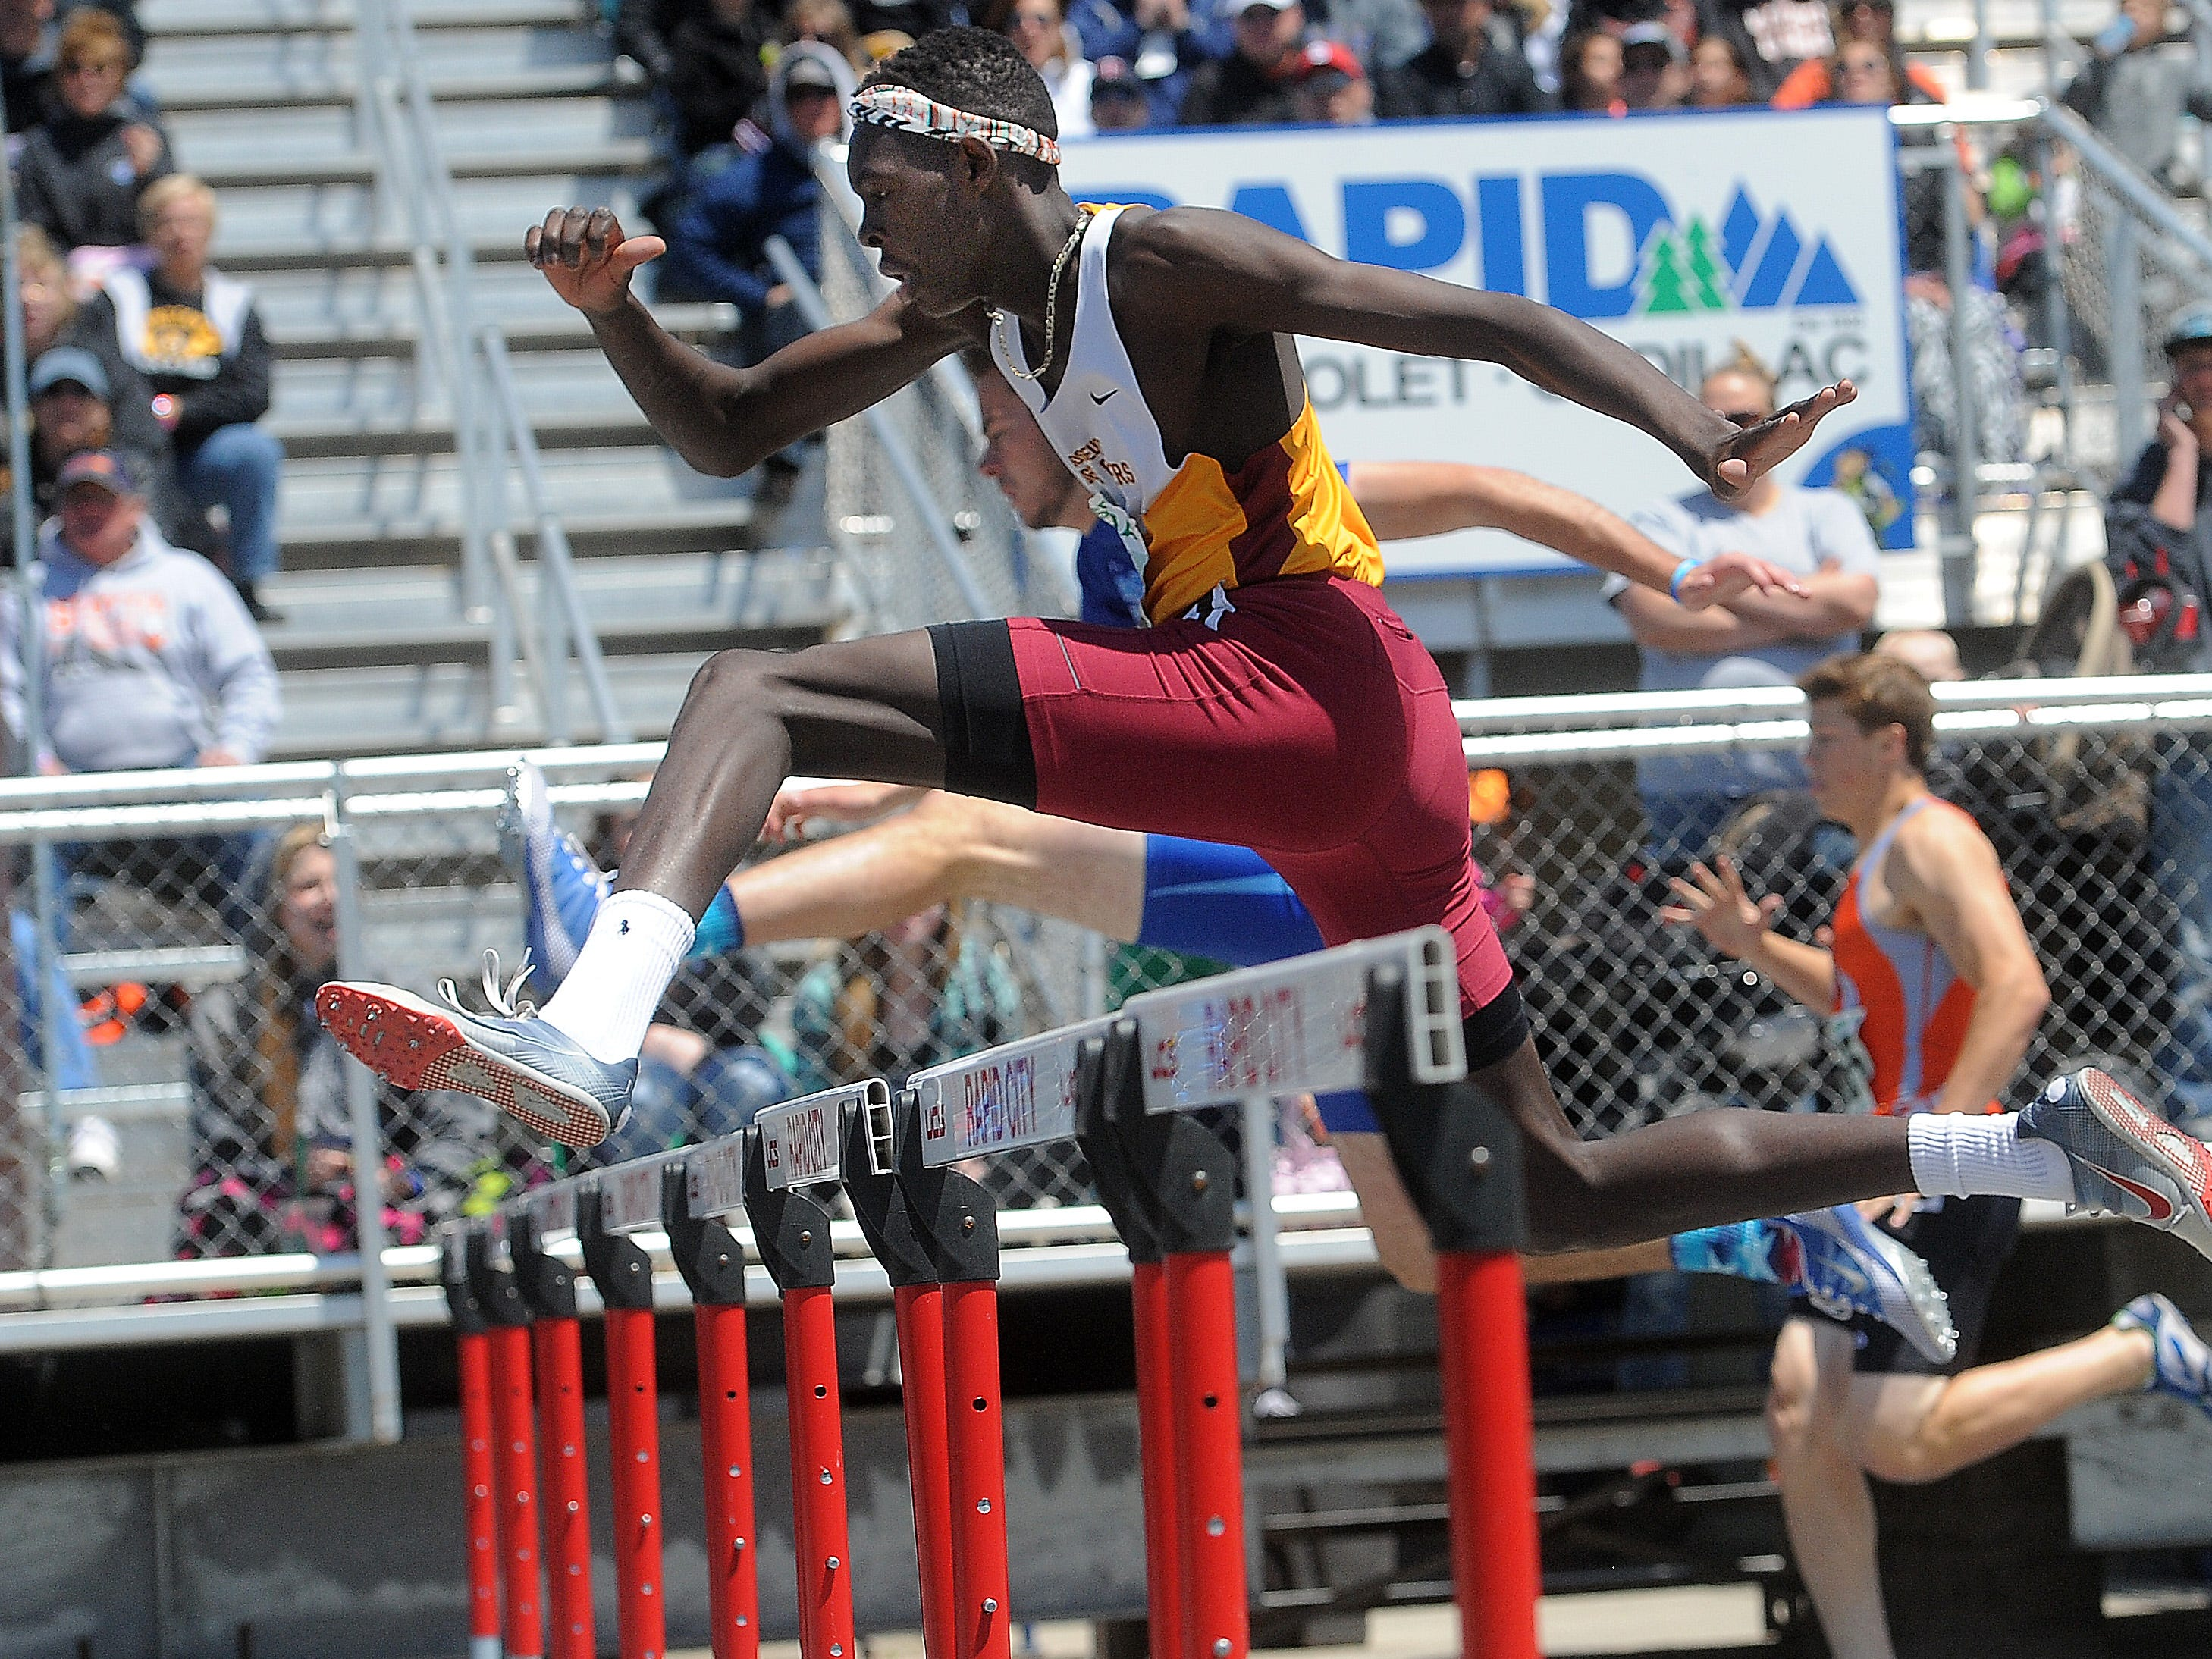 Roosevelt's Mayuen Akok race to victory Saturday in Rapid City in the 300 hurdles. His time was 39.72 seconds. He later helped the Rough Riders to a win in the 800 relay.